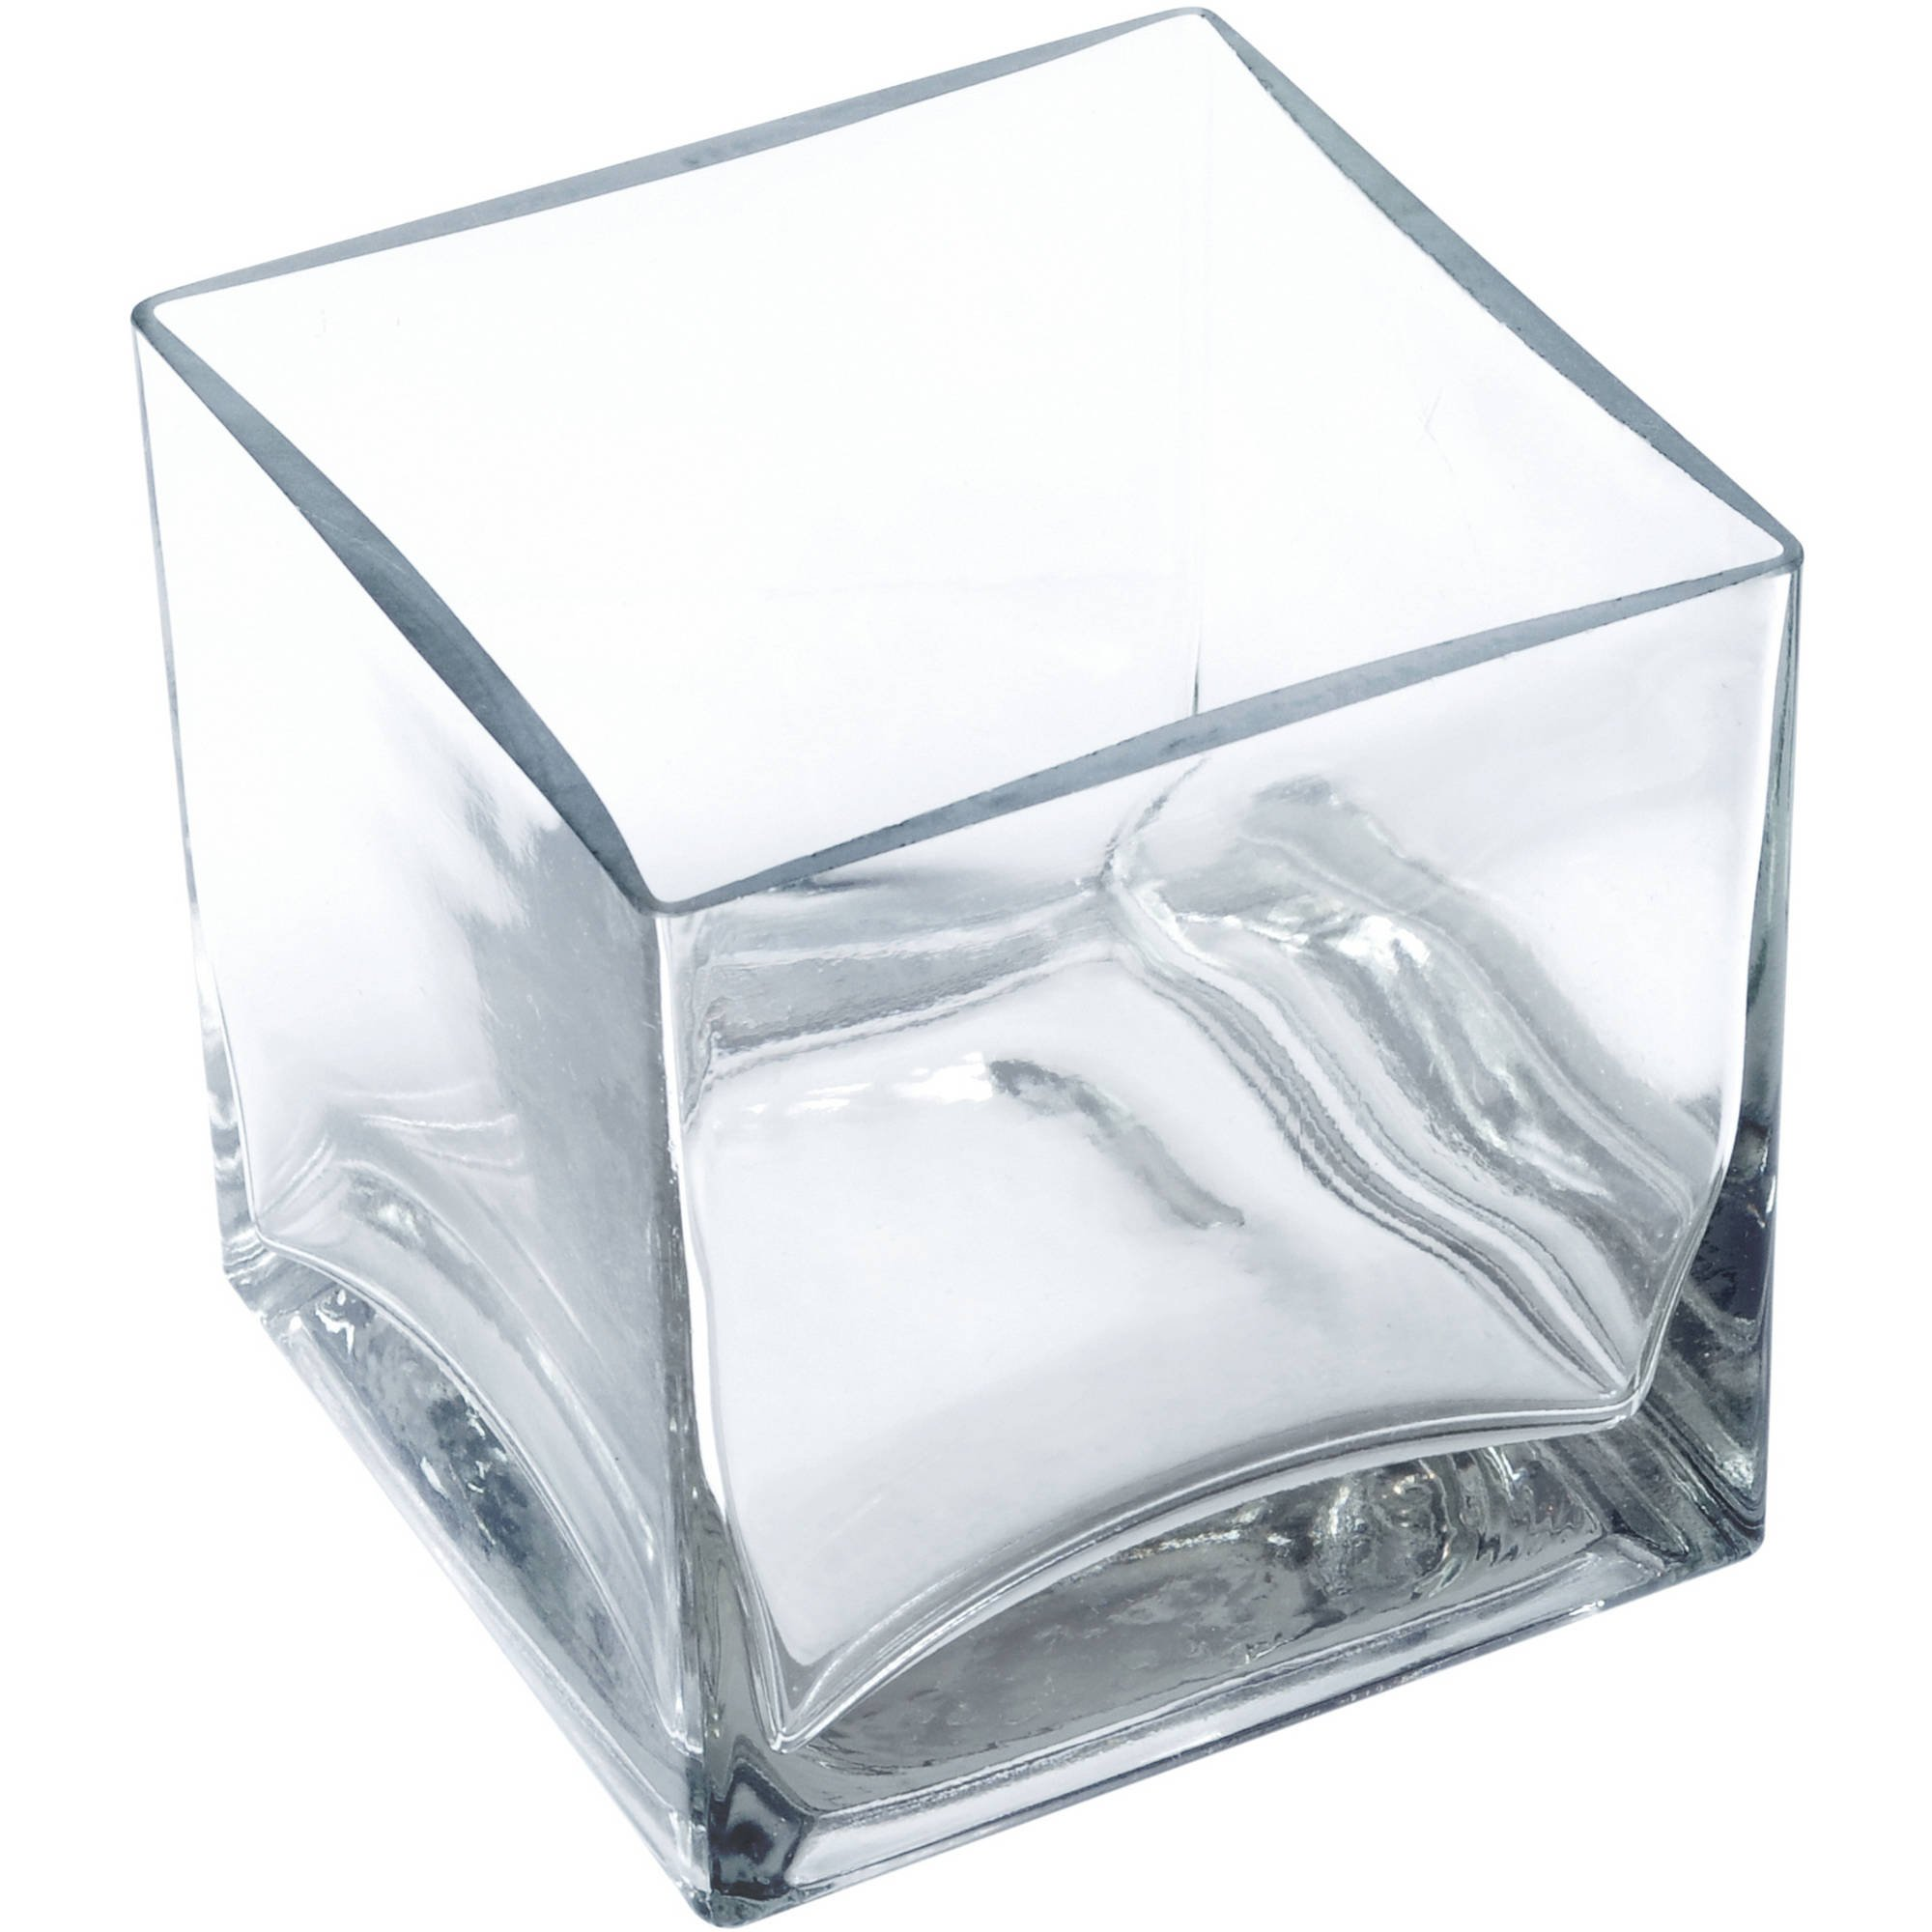 6 PC Clear Square Glass Votive Candle Holder centerpiece 6''H x 6''W x 6''L Floral Vase - Case of 6 by Vases & Props